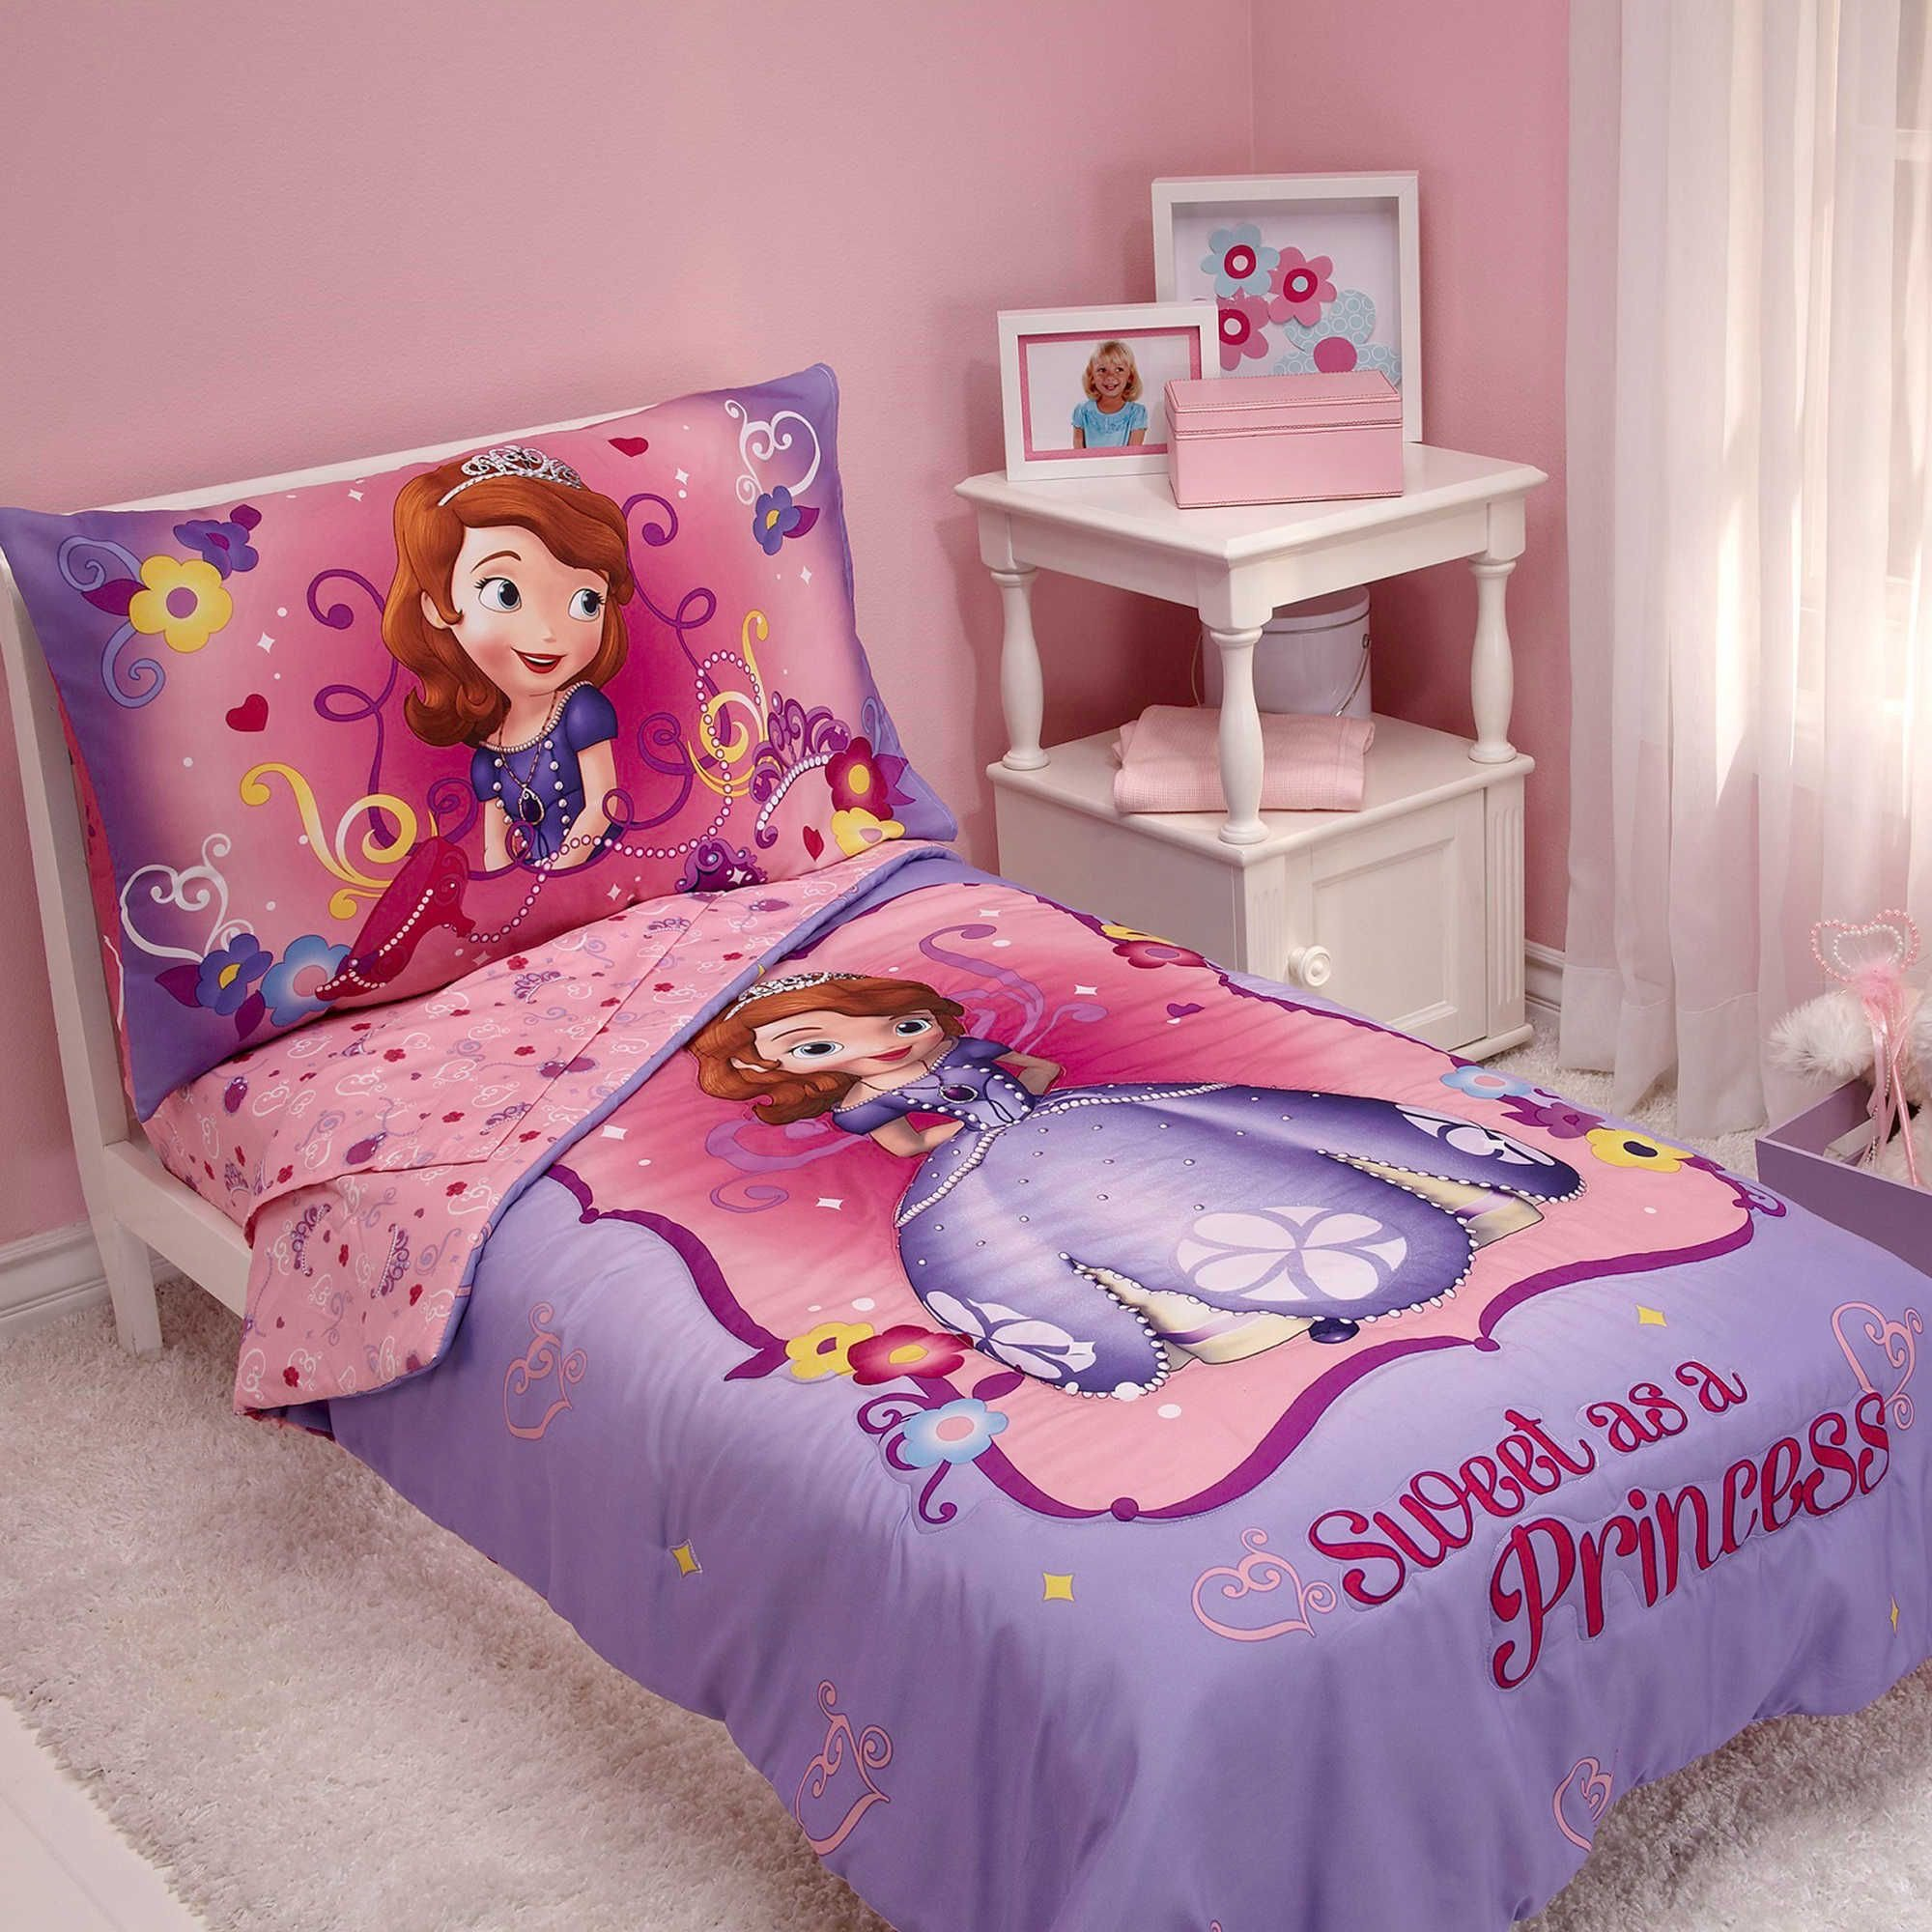 Girl Princess Bedroom Set New Pin On Christmas T Ideas